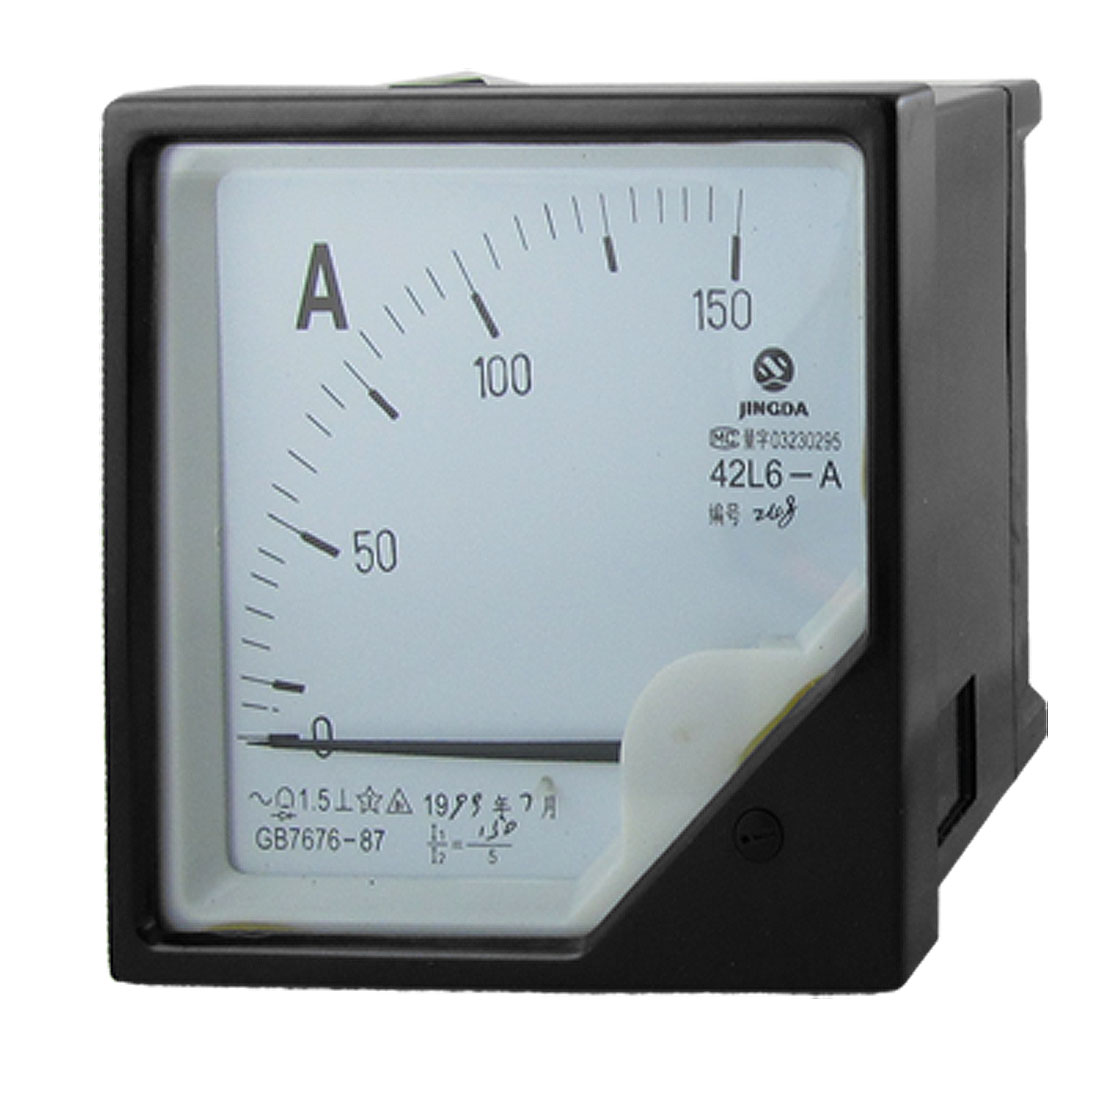 AC 0-150A 1.5 Accuracy Analog Panel Ampere Meter Gauge 42L6